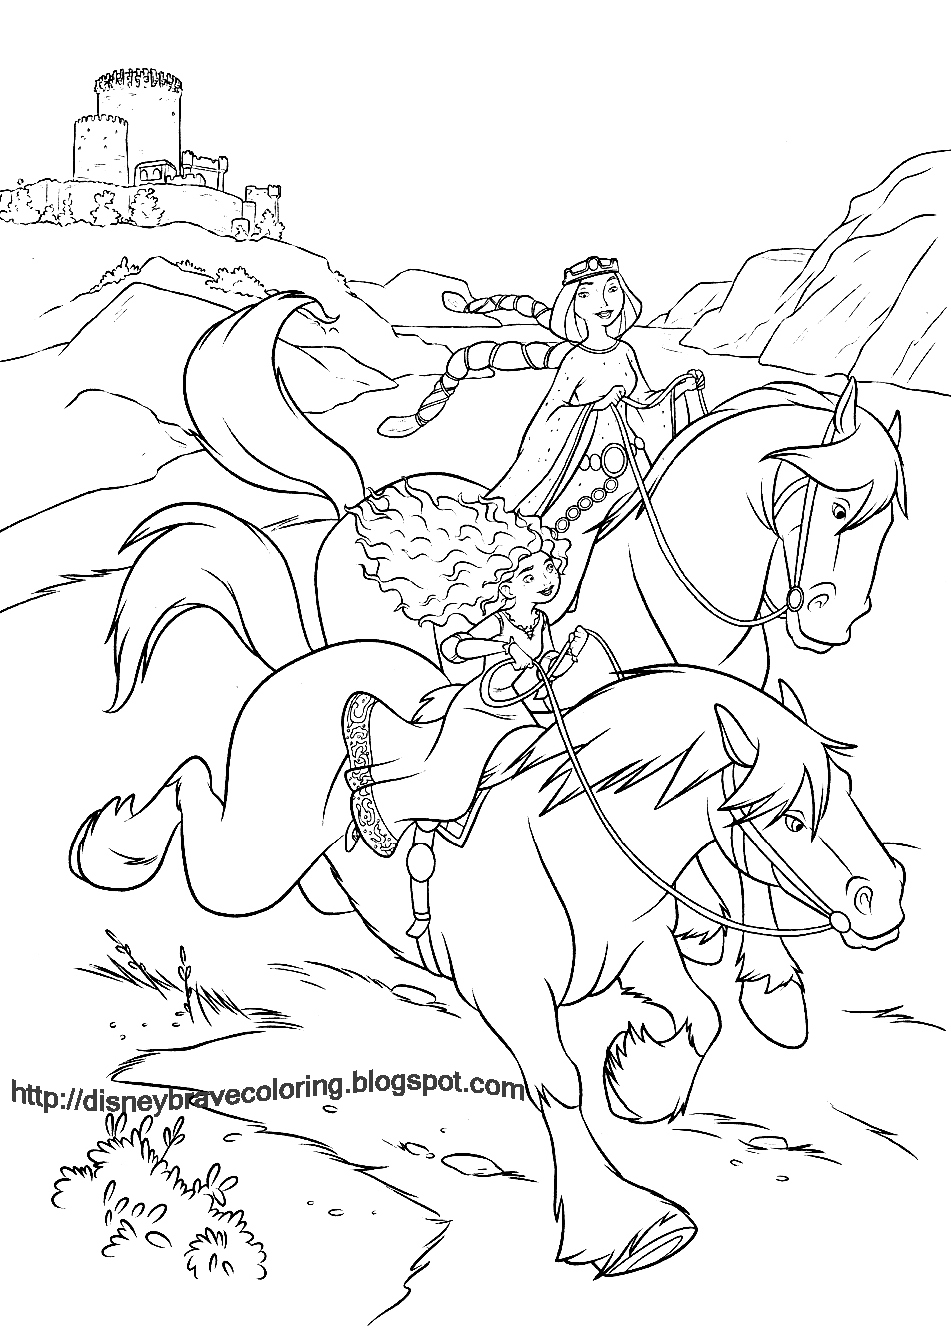 LETS COLORING BOOK: COLOURING BOOK SHEETDISNEY BRAVE COLOURING PAGES ...